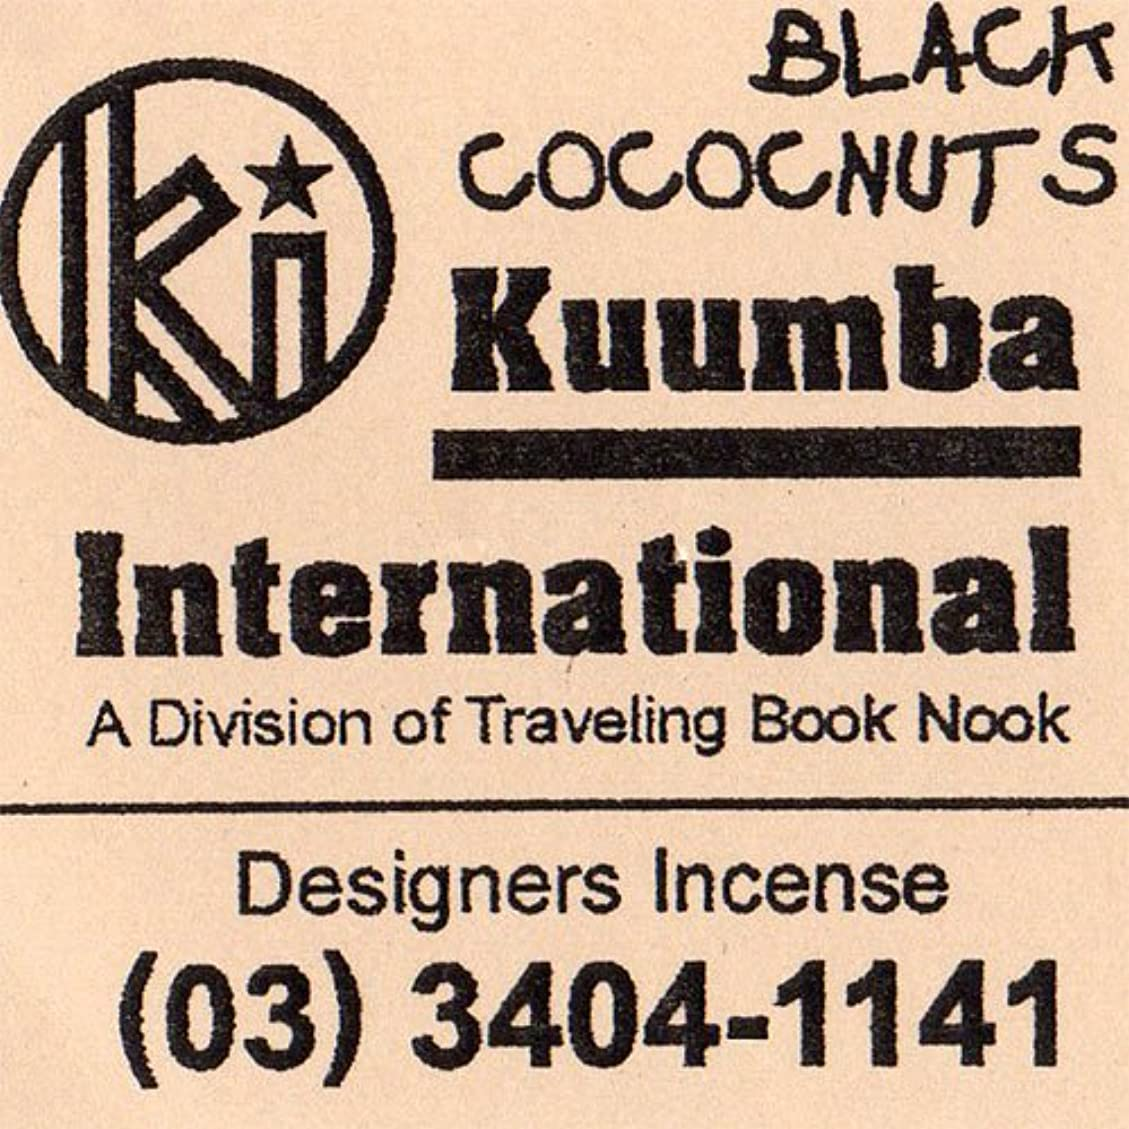 れんが火傷蚊KUUMBA / クンバ『incense』(BLACK COCONUTS) (Regular size)